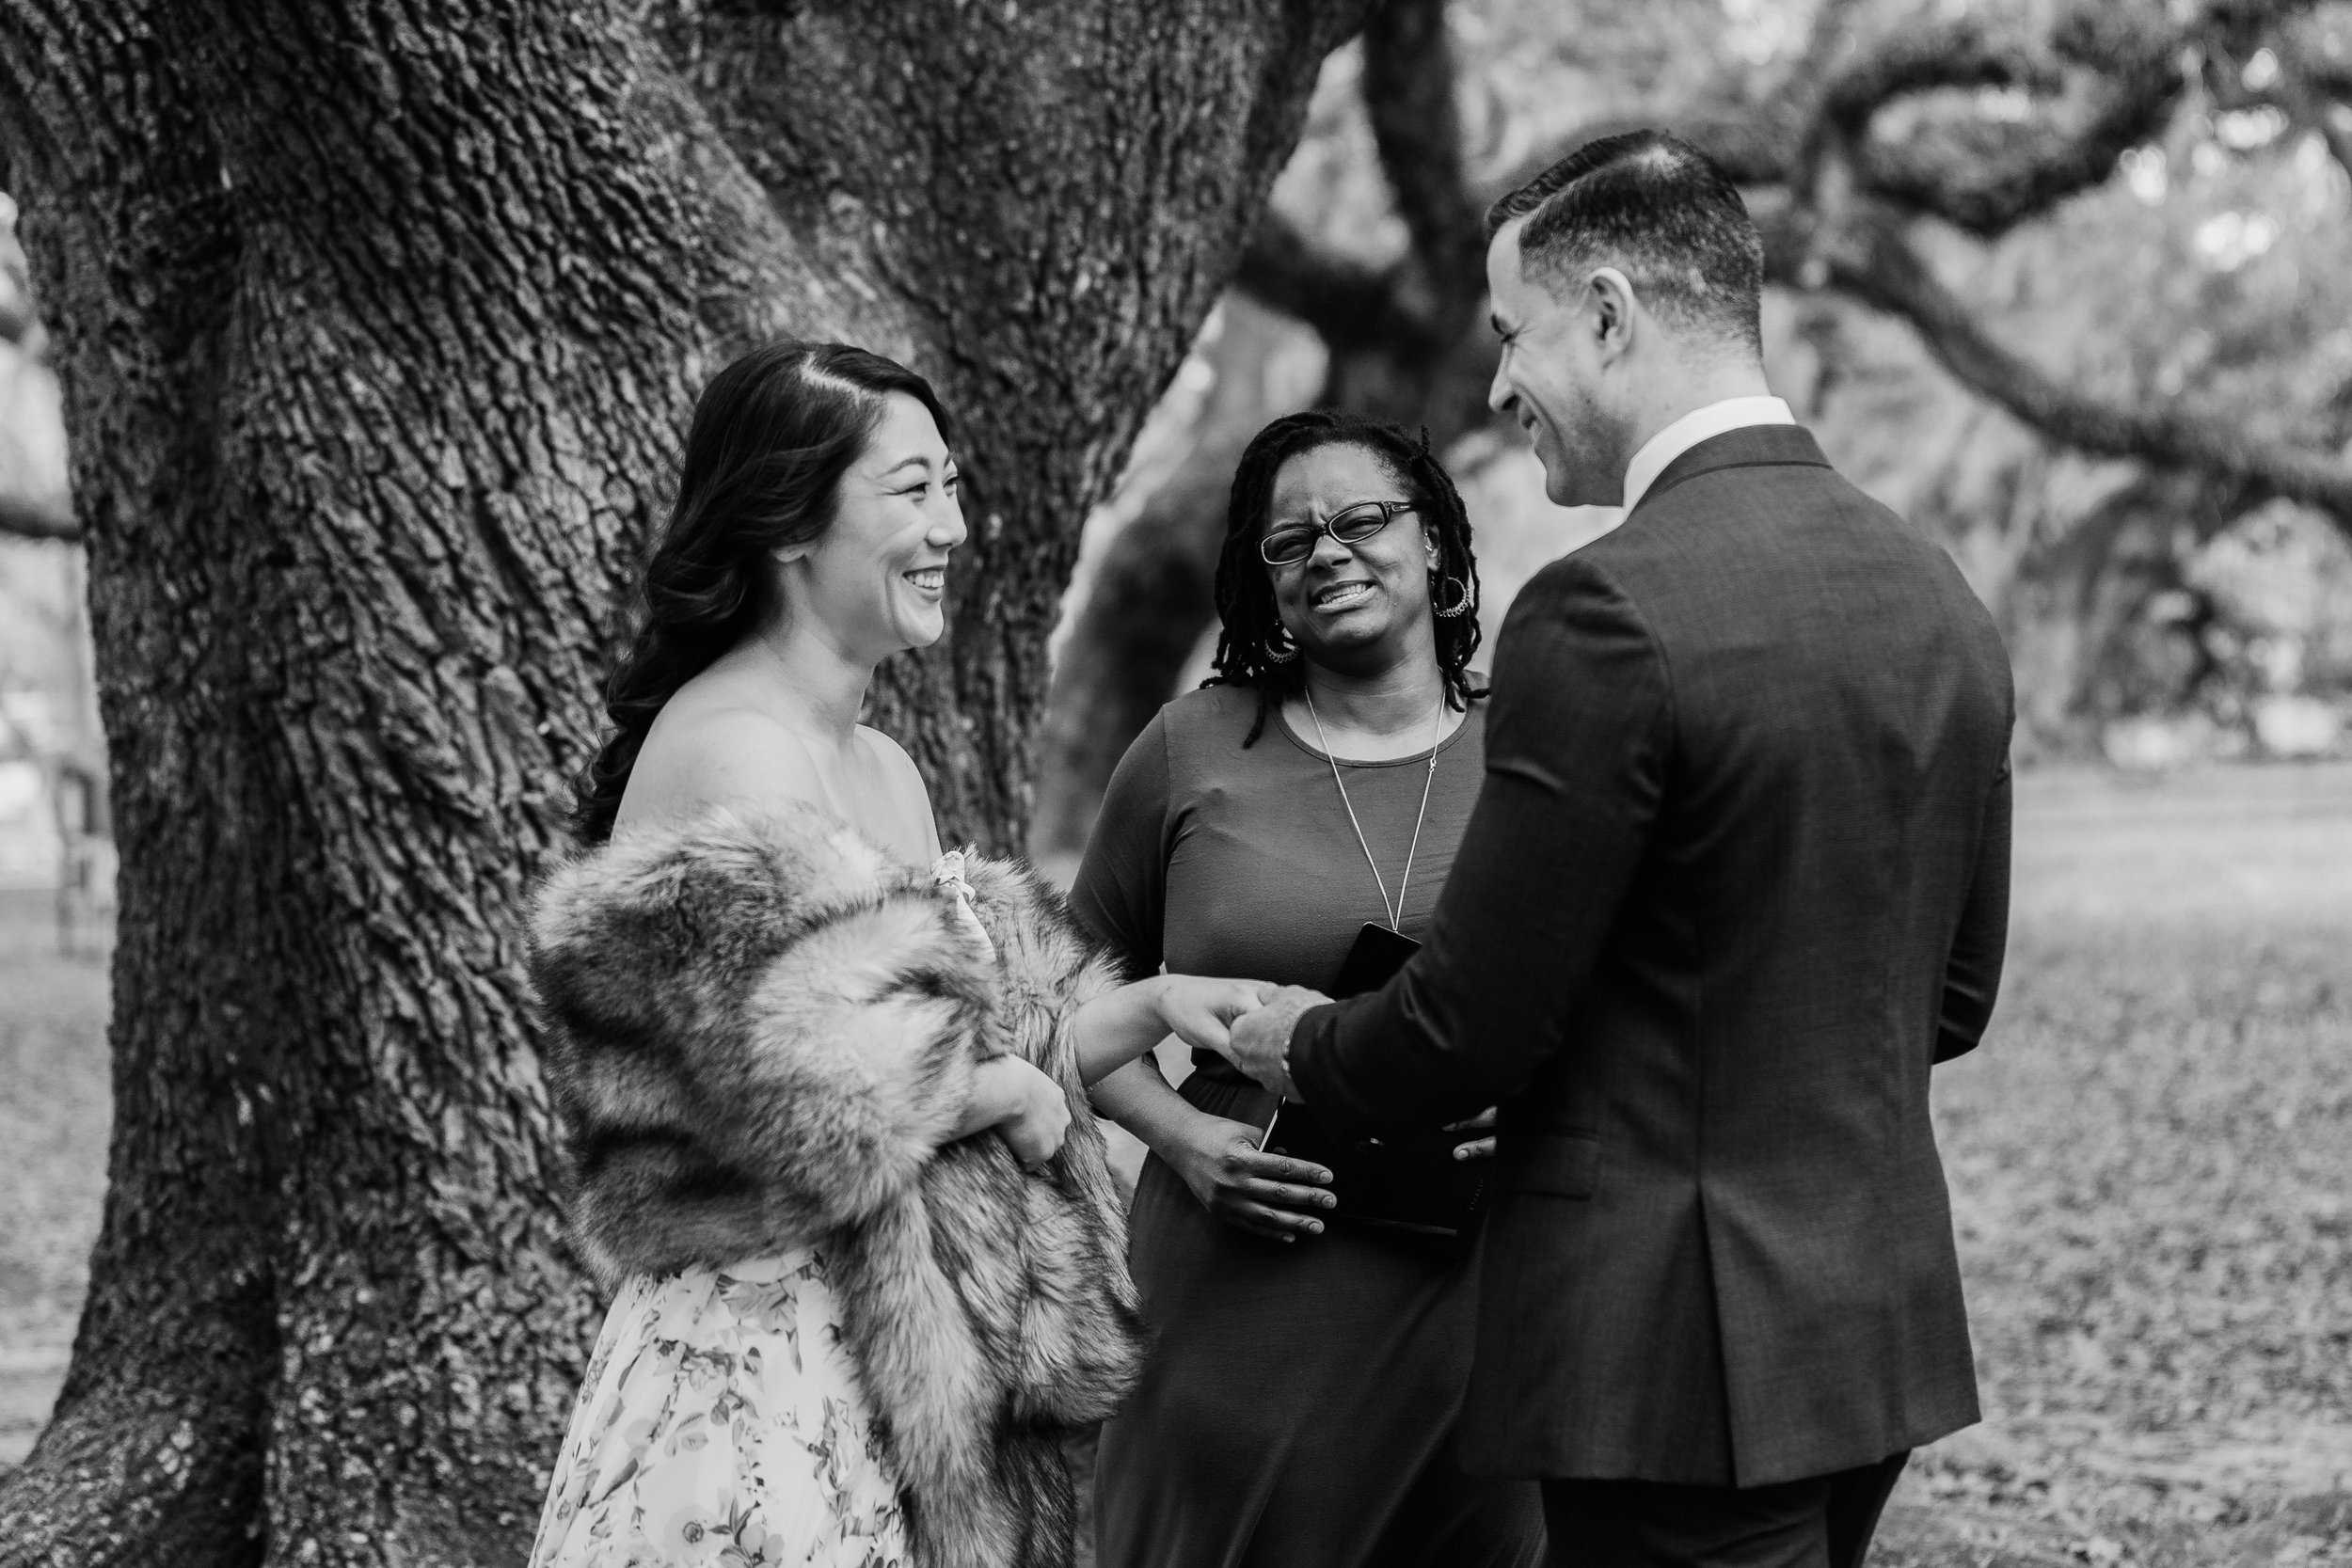 City Park Elopement New Orleans Wedding Photographer Ashley Biltz Photography7.jpg